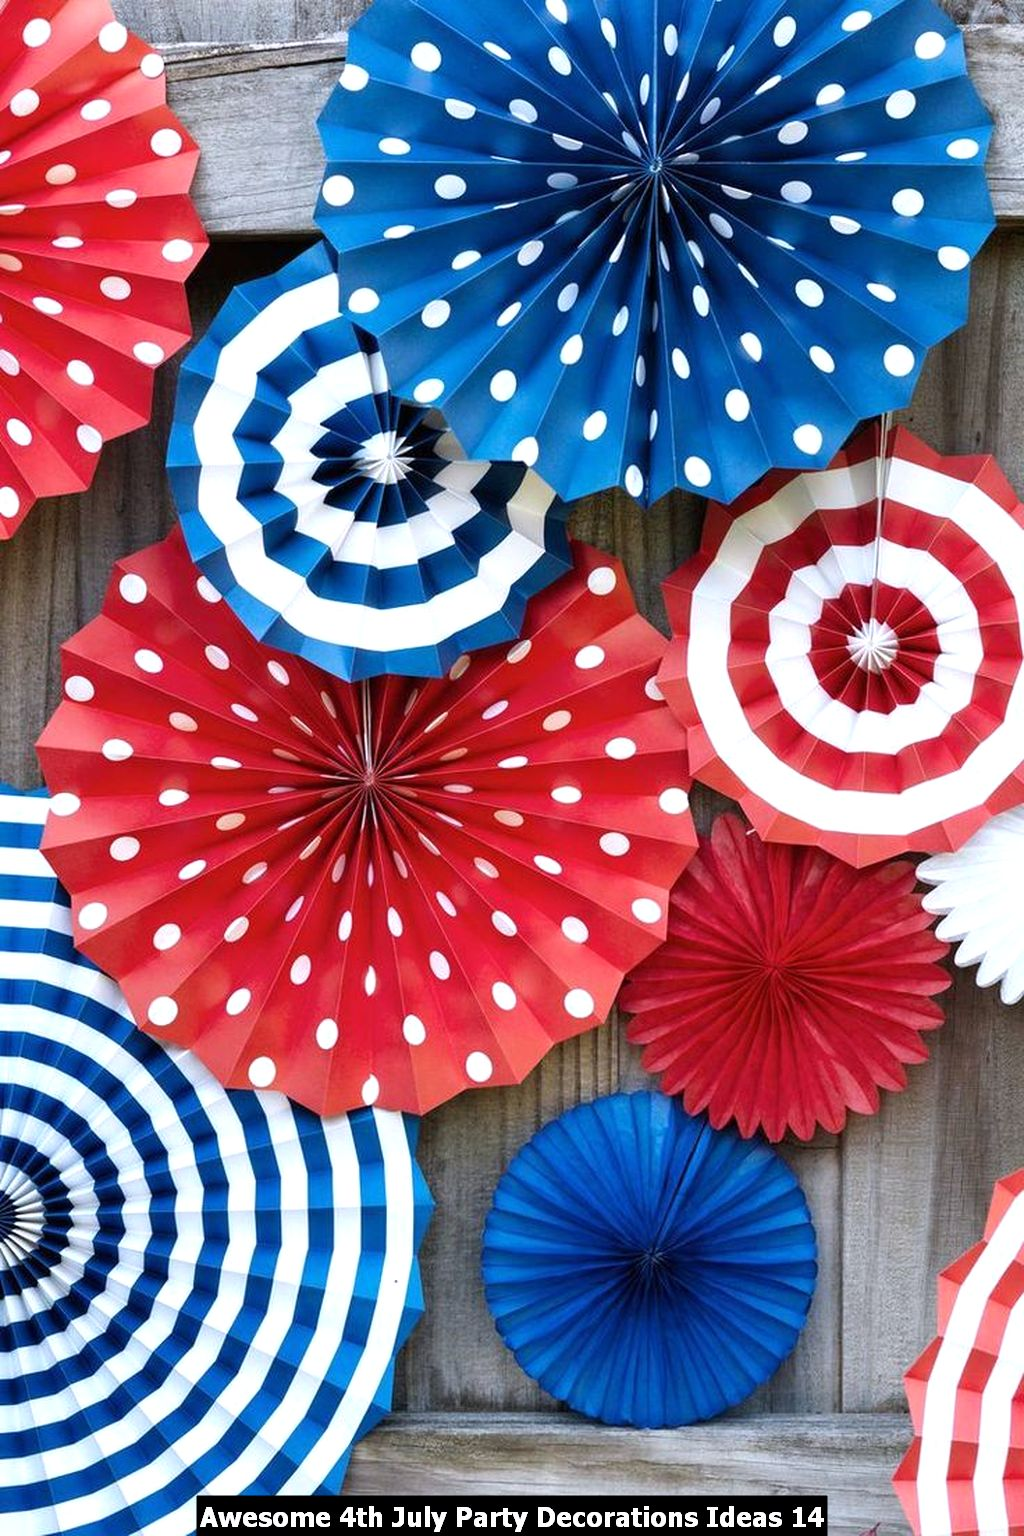 Awesome 4th July Party Decorations Ideas 14